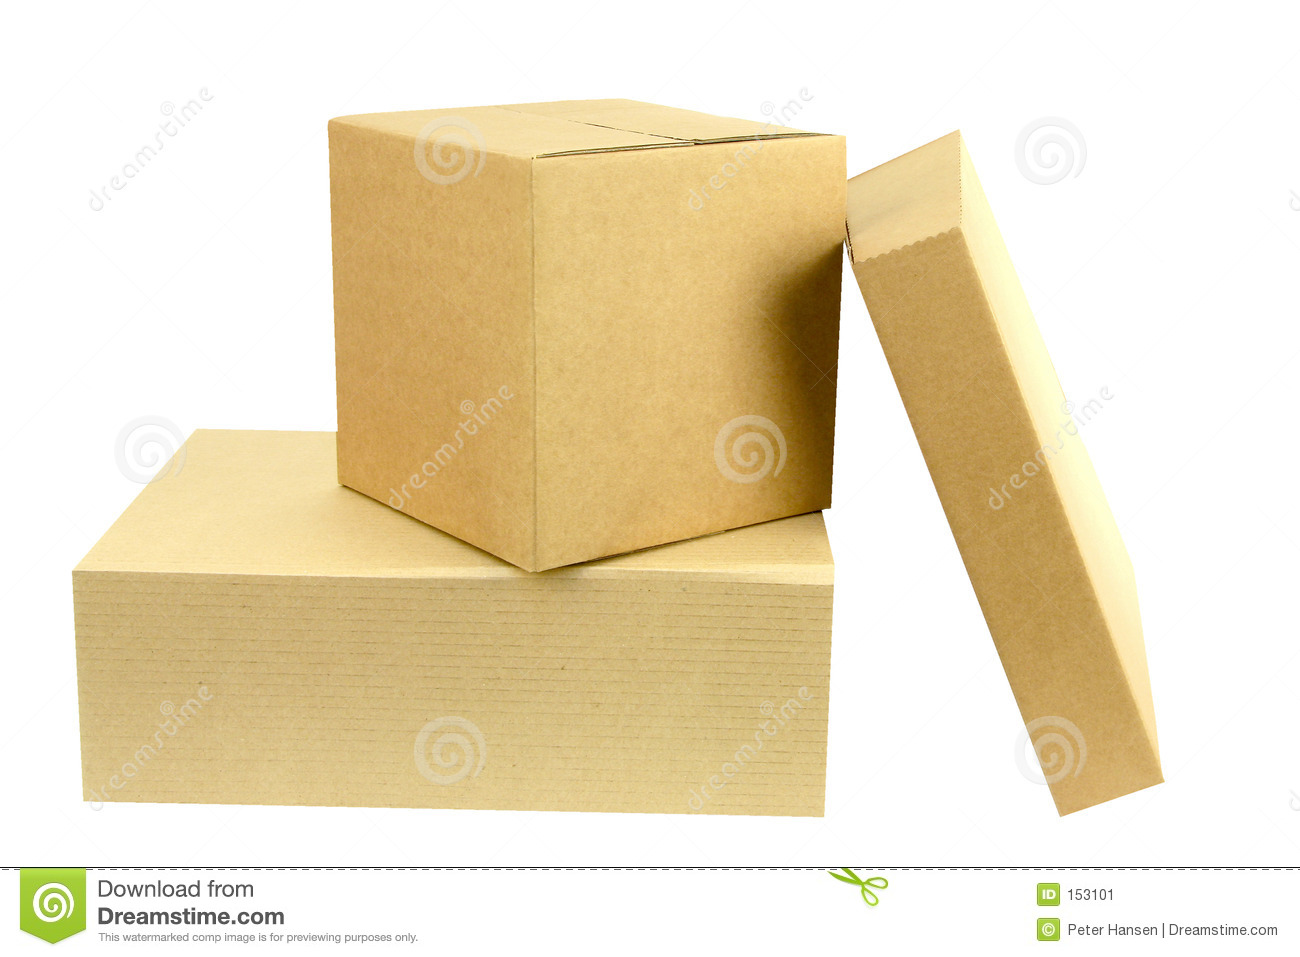 Pile of three boxes front on